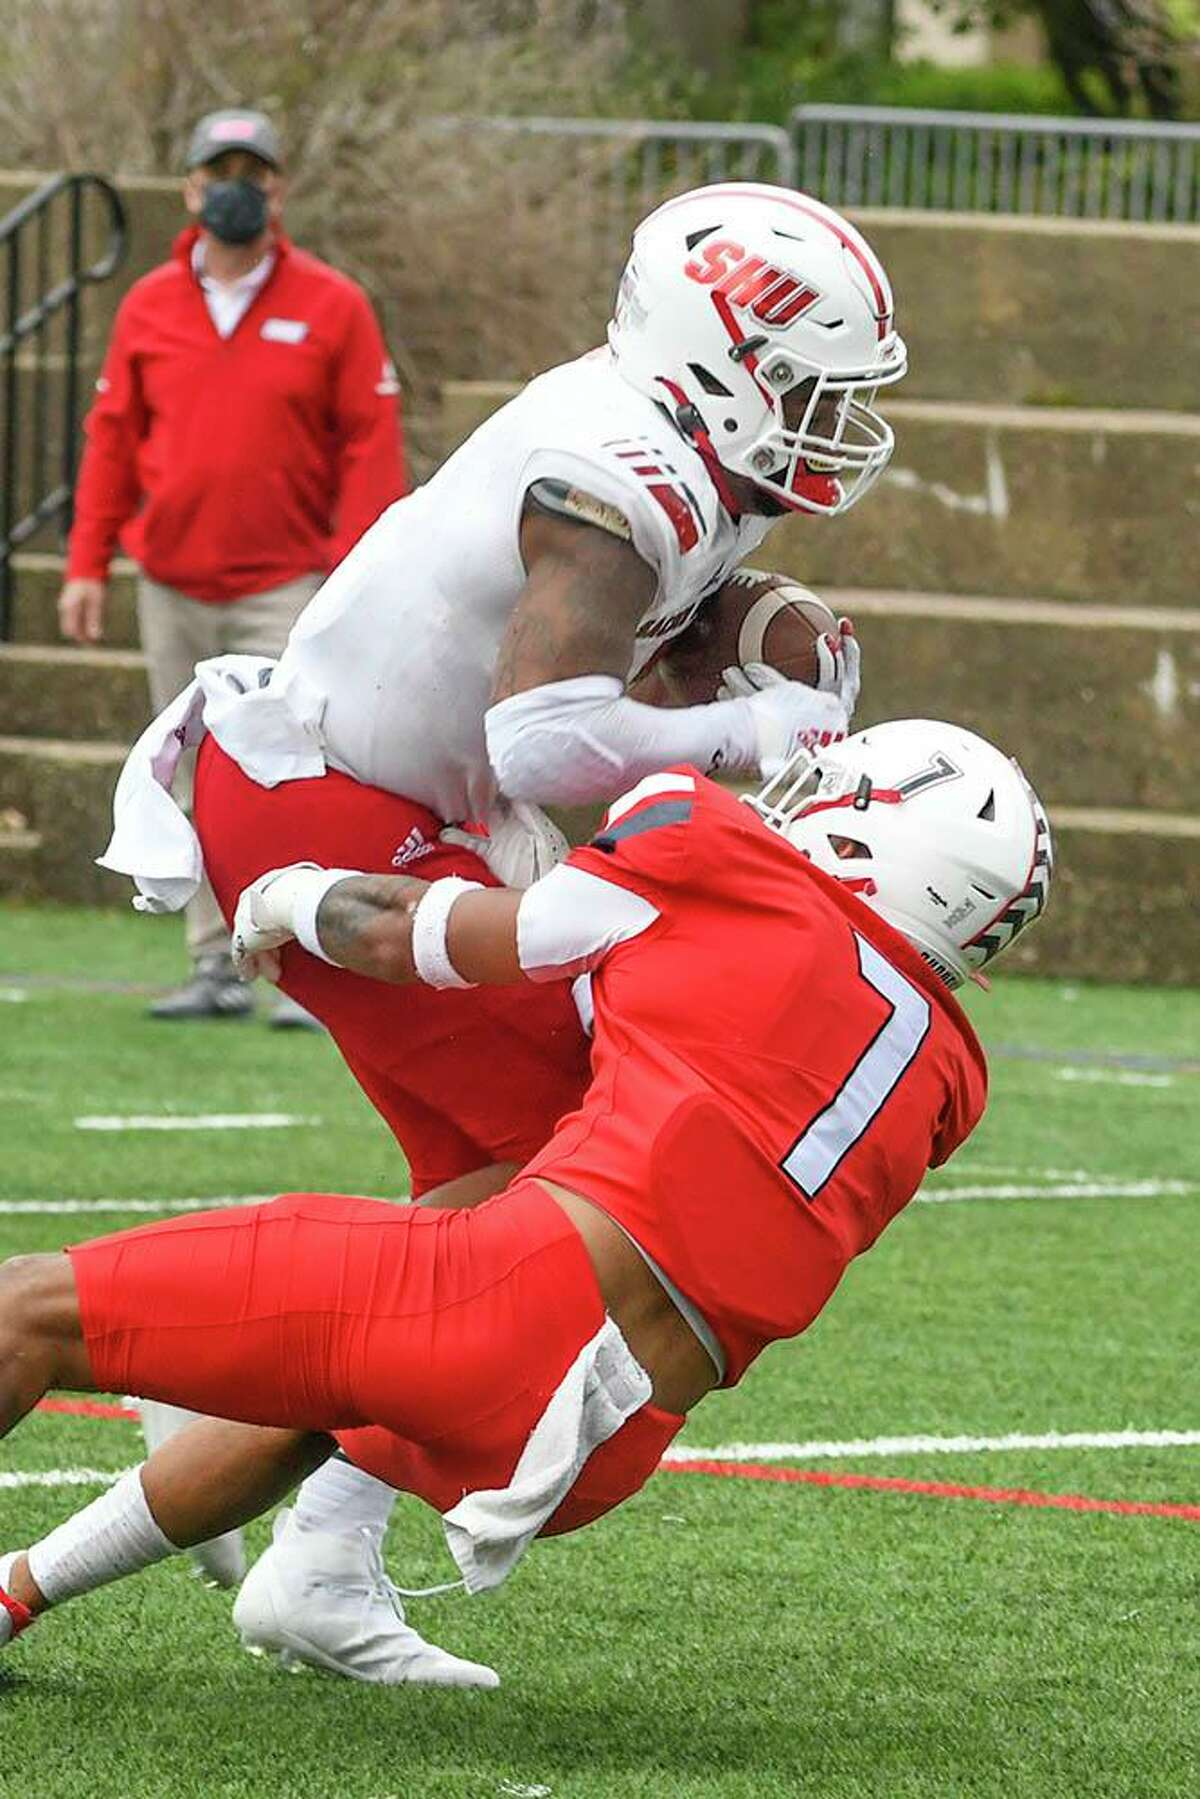 Sacred Heart's Julius Chestnut fights for yards during Sunday's win in the NEC championship game against Duquesne.